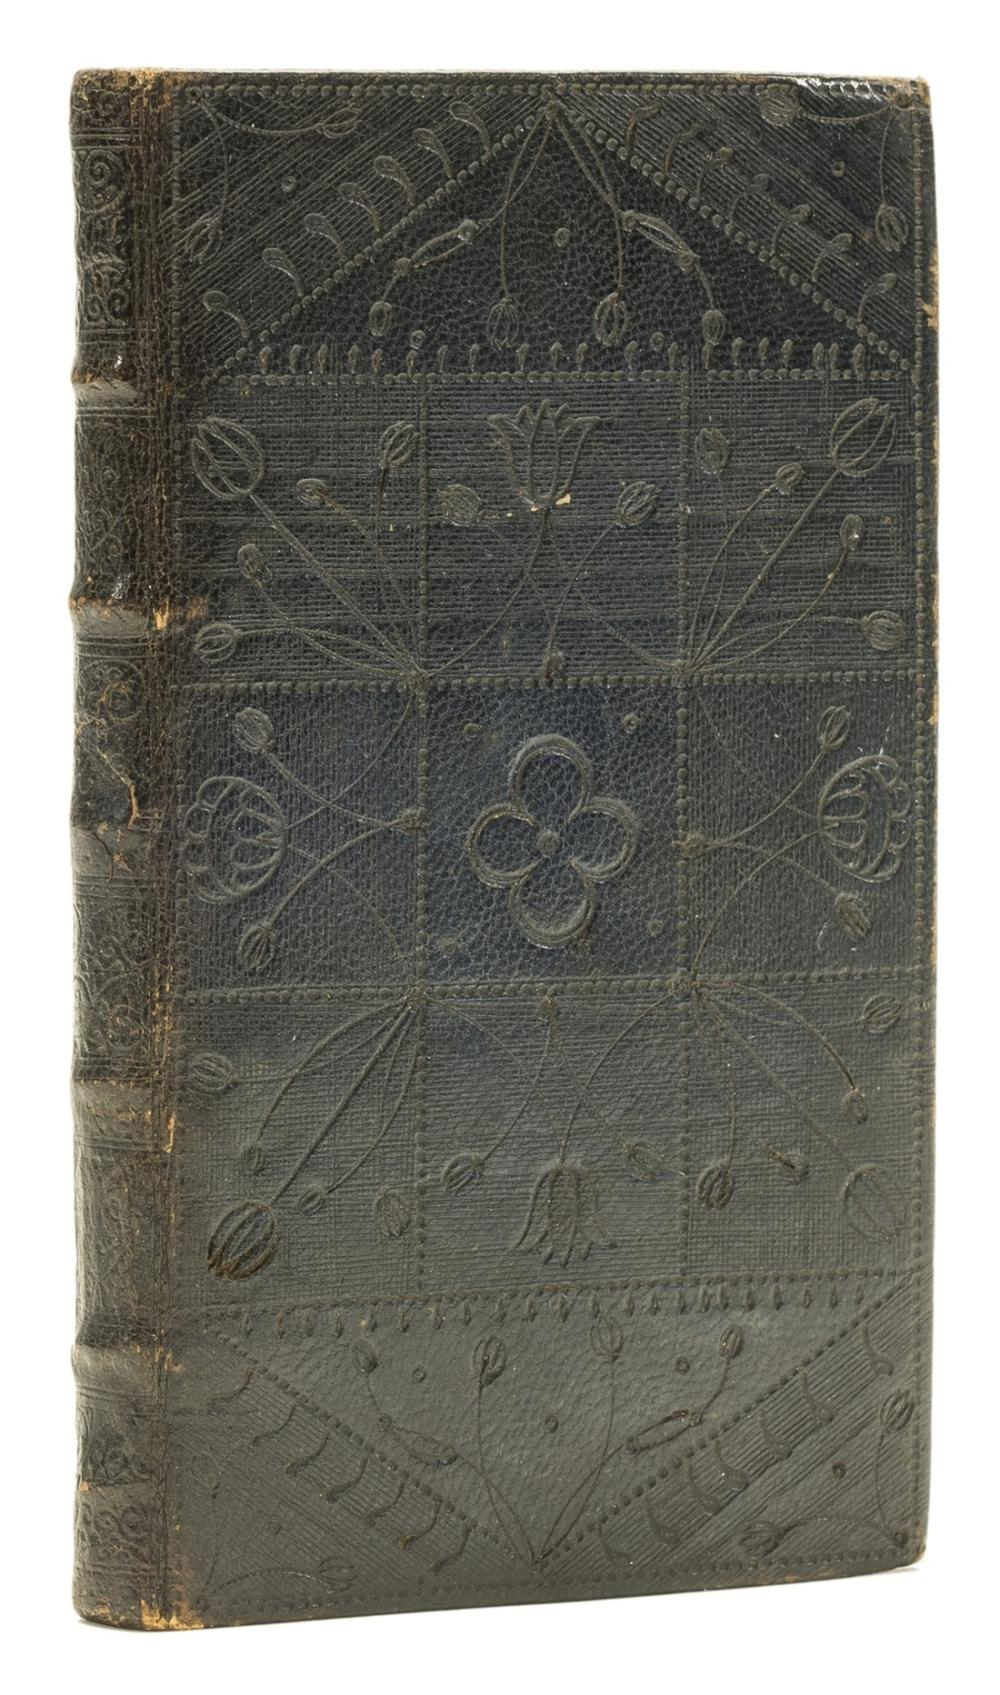 Medical recipes.- Collection of medical recipes, bound in a late 17th century black morocco sombre binding, 1767 & [1680s].